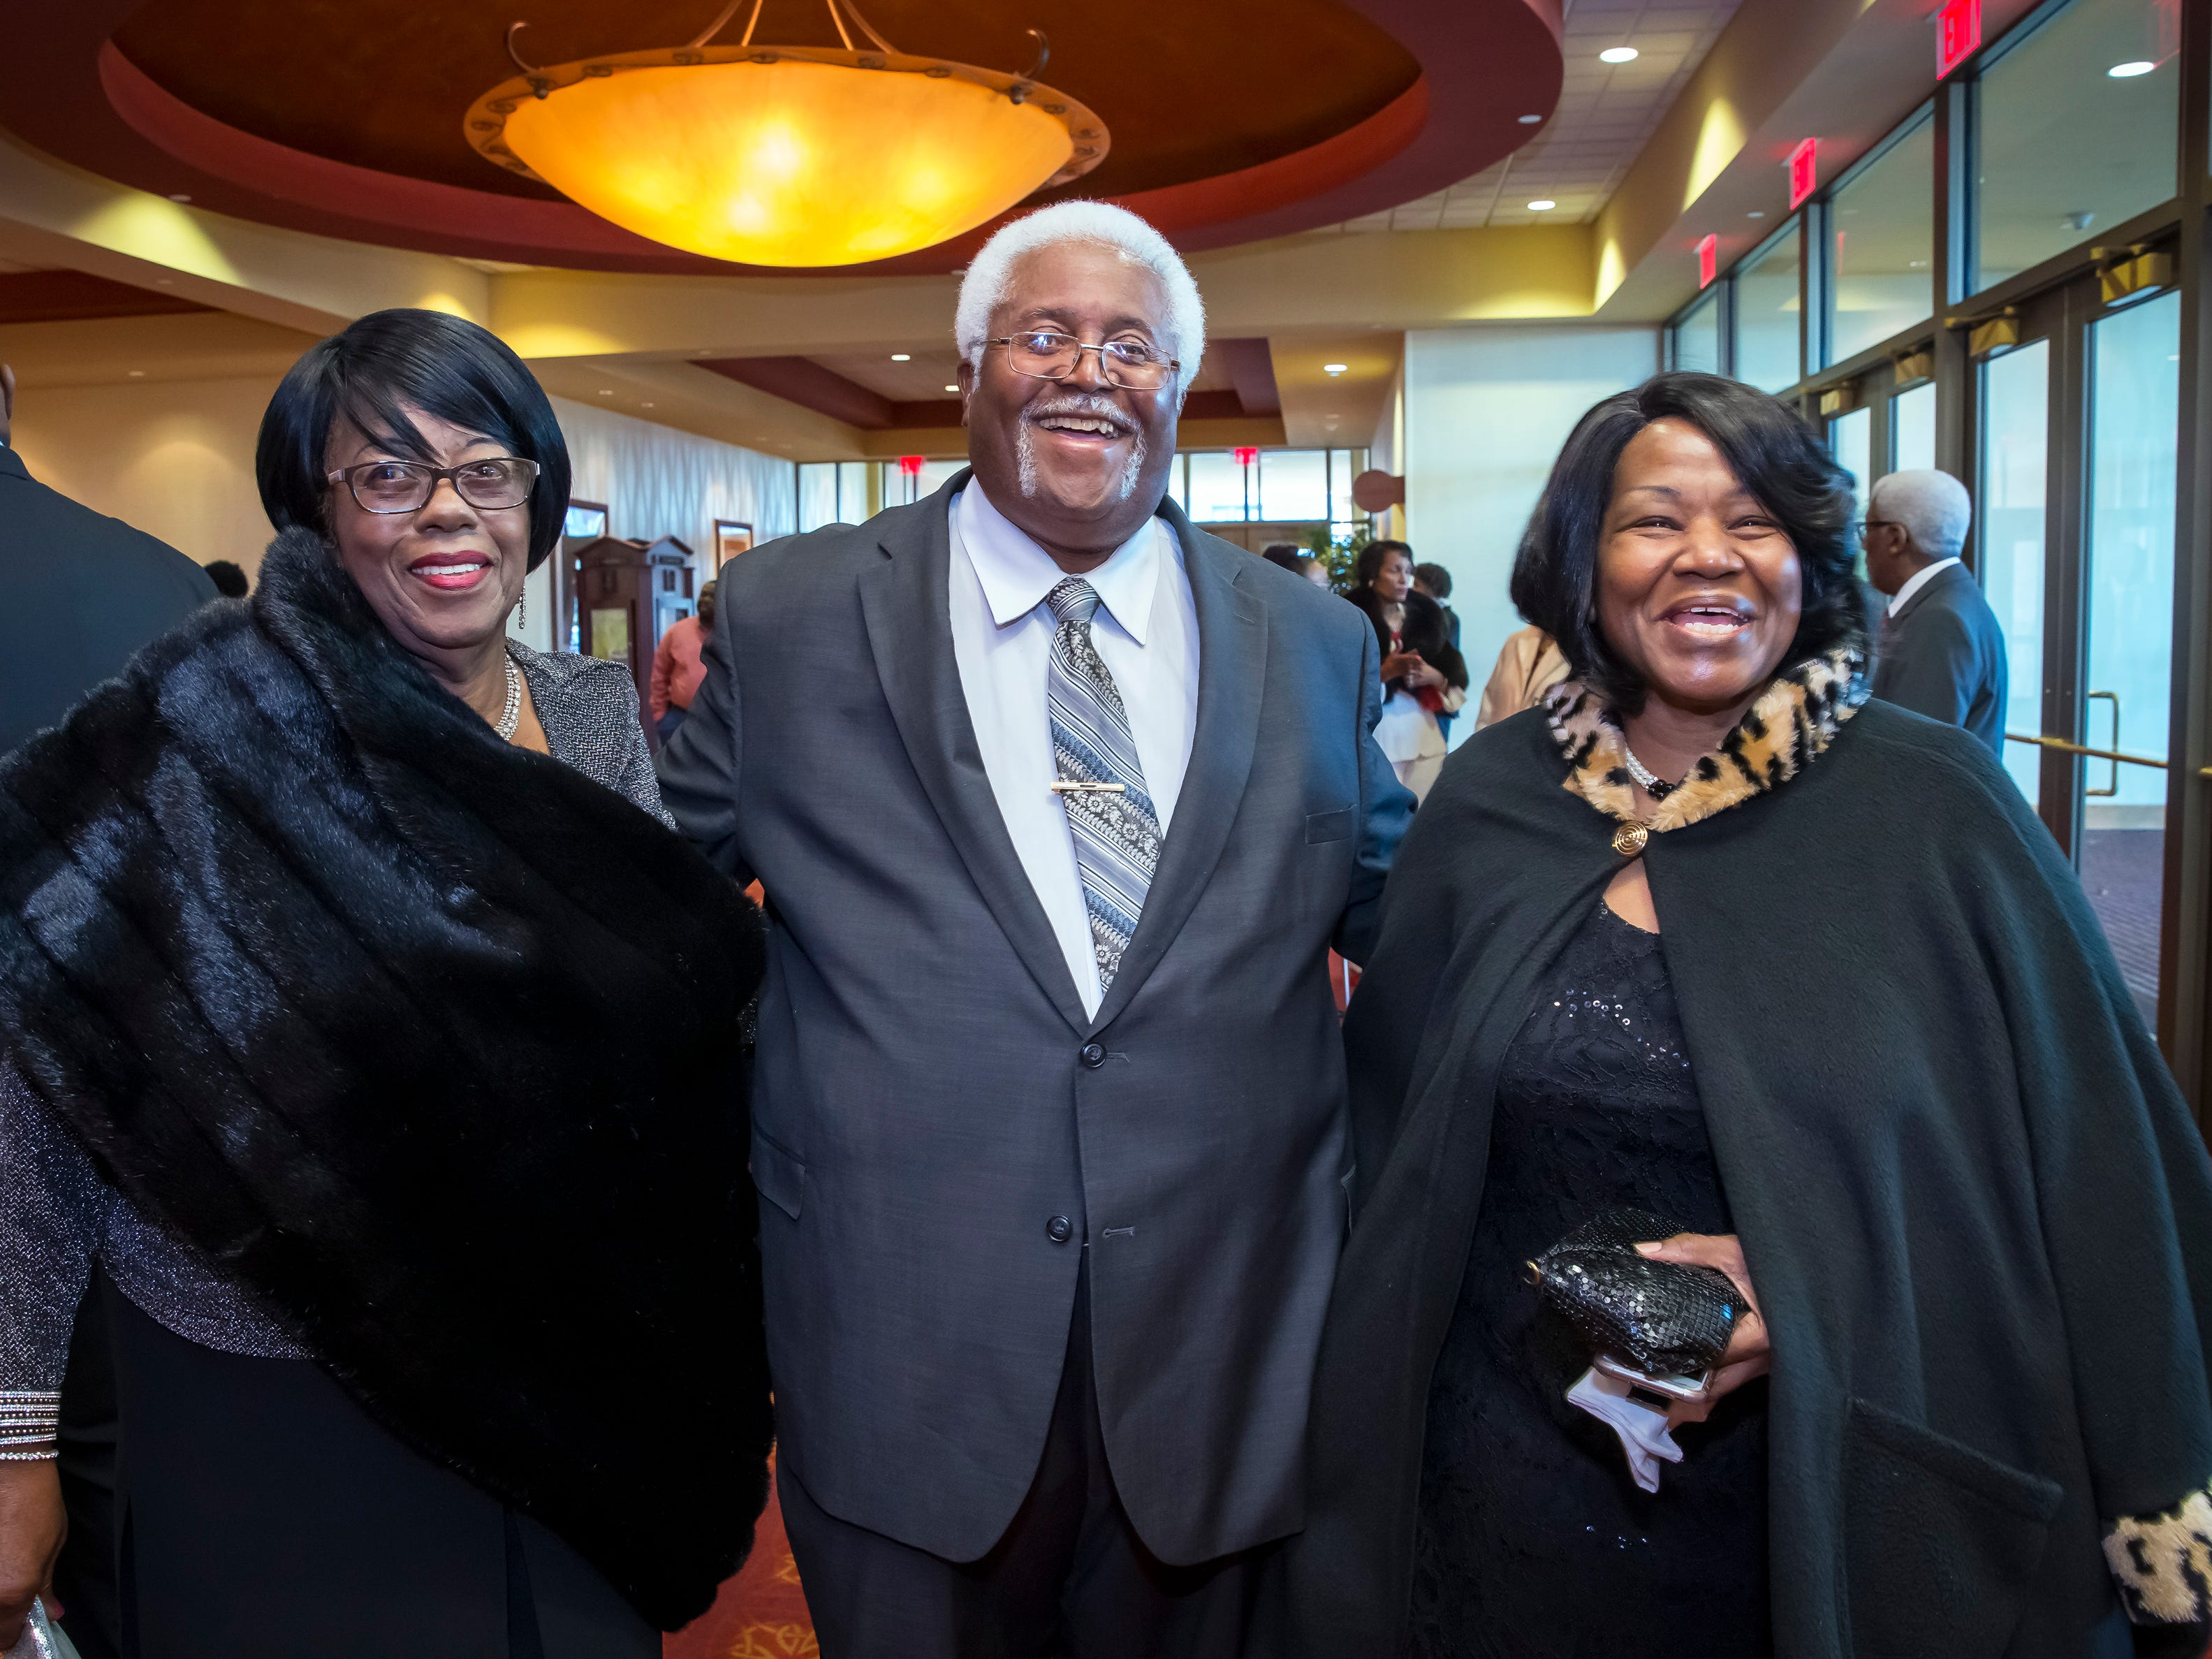 Ernestine Floyd, Goldy Wade and Benita Ivy at the Murfreesboro Alumni Chapter of Kappa Alpha Psi Fraternity Beautillion held at Embassy Suites.